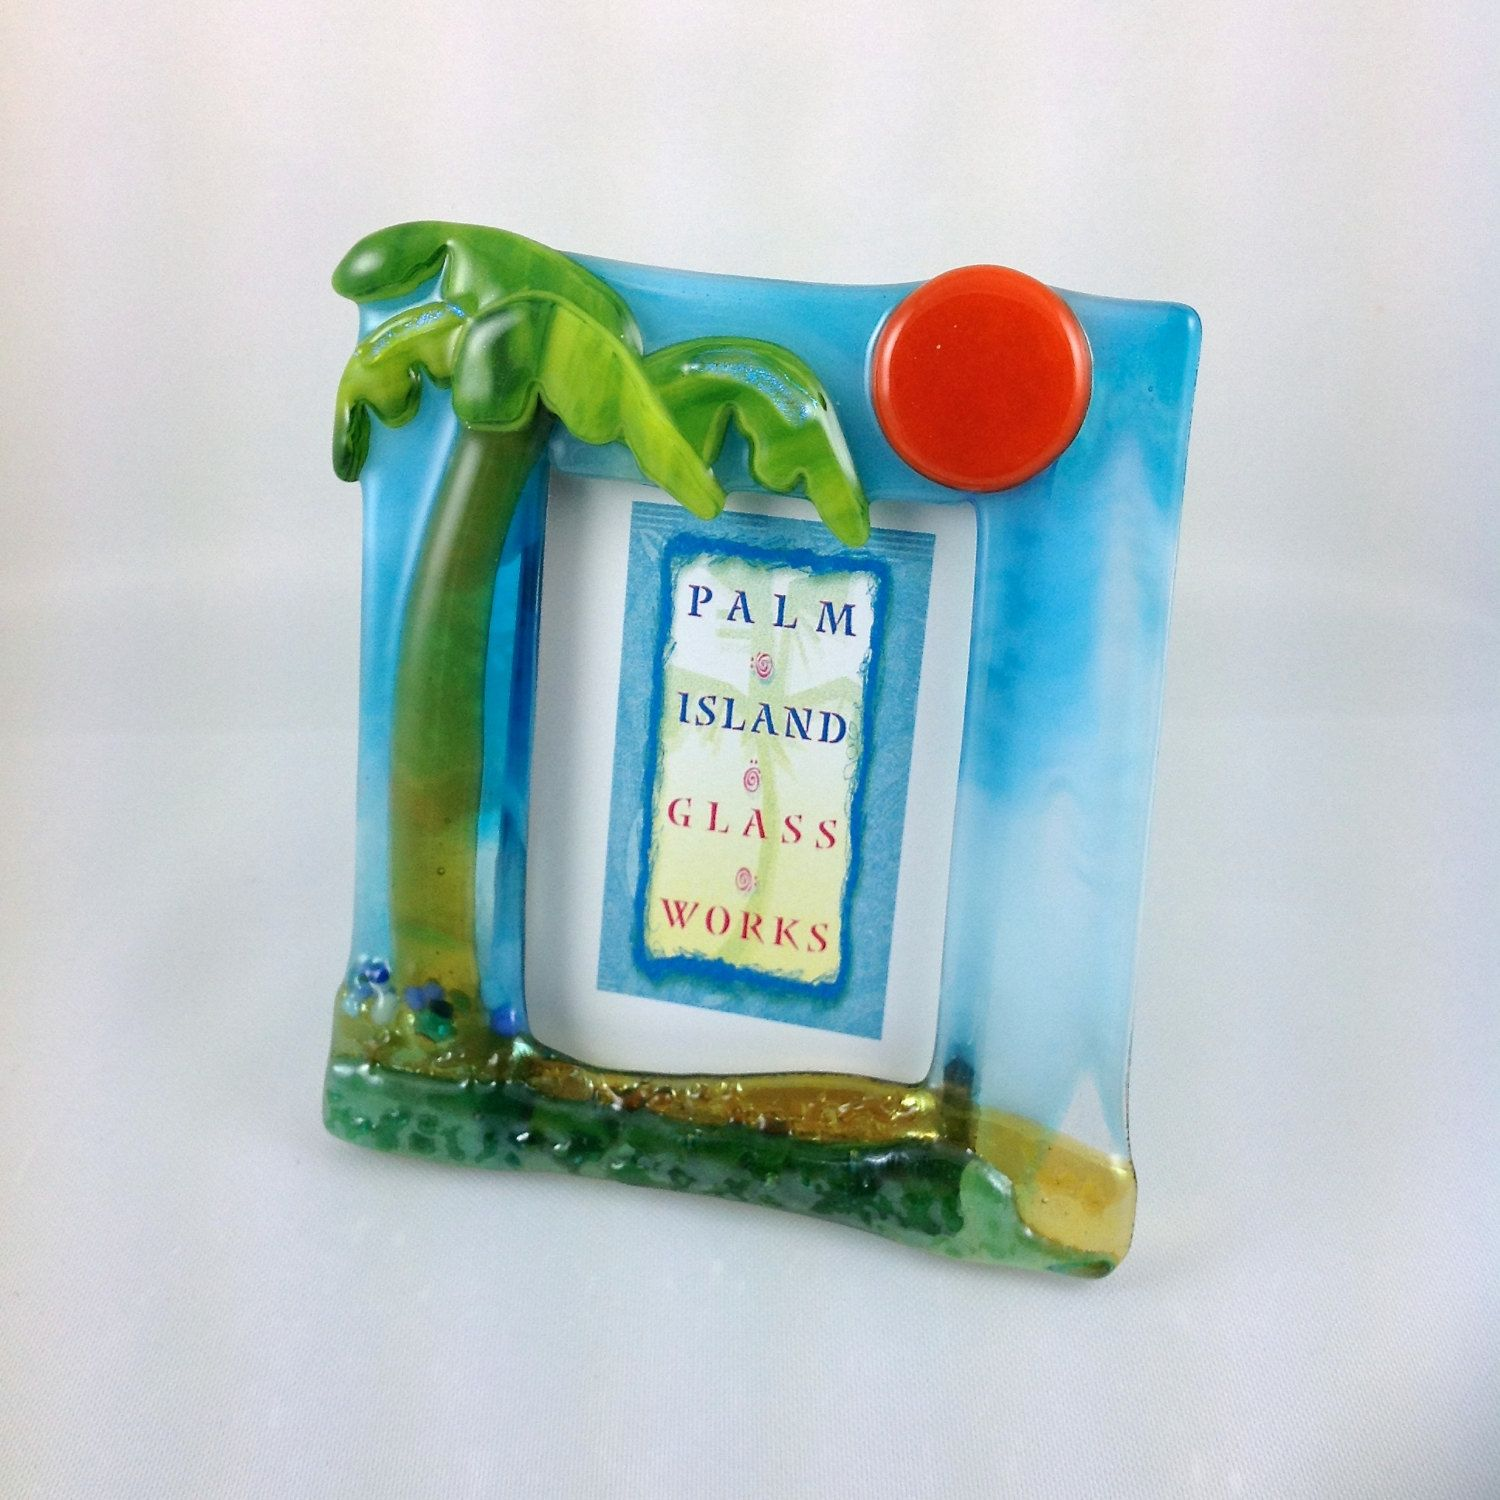 Fused glass picture frame palmtree single 25 w x 35 h fused glass picture frame palmtree single w x h perfect for wallet size photos by palmislandglassworks on etsy jeuxipadfo Image collections